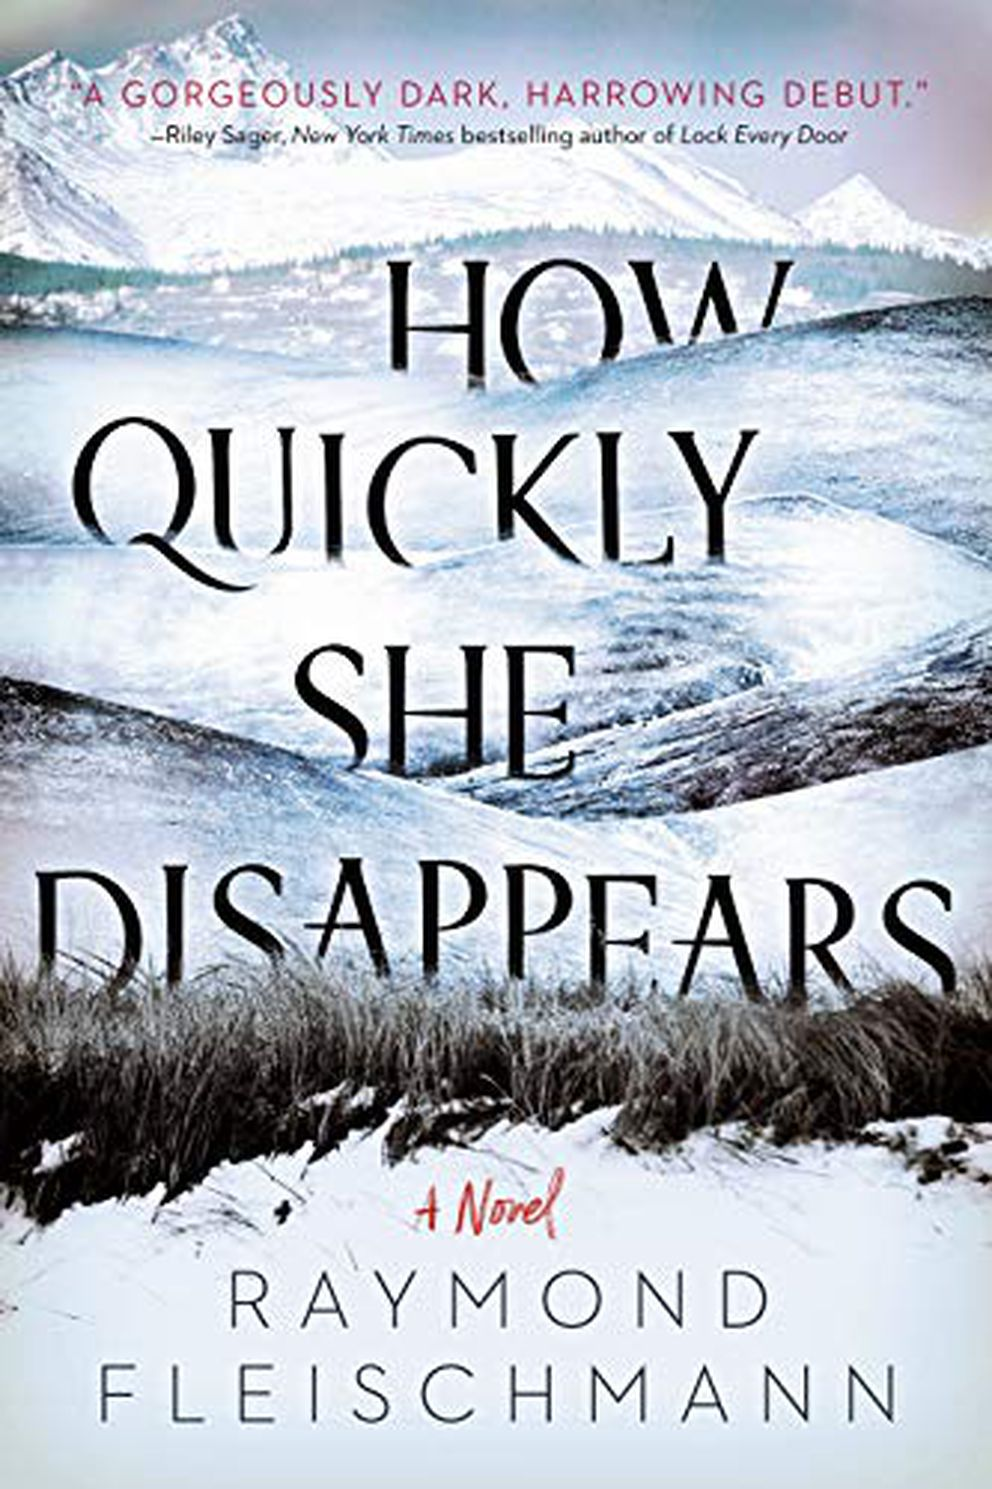 'How Quickly She Disappears, ' by Raymond Fleischmann